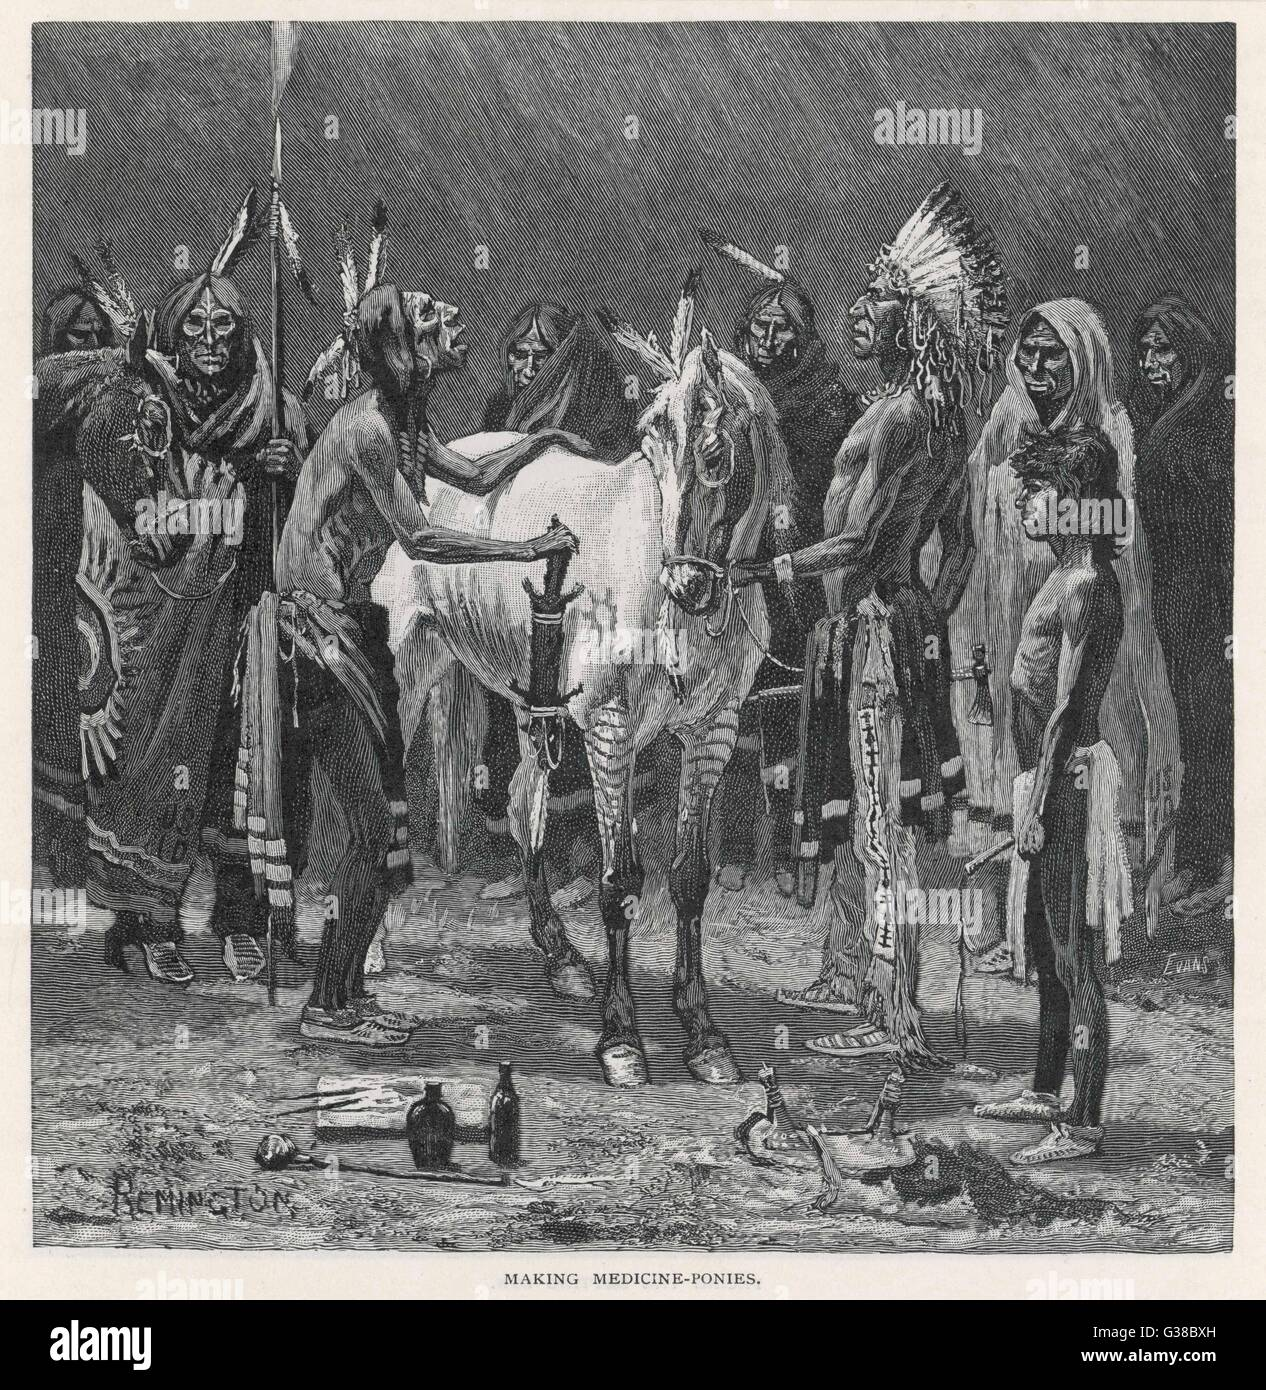 Medicine ponies of the Sioux         Date: 1890 - Stock Image